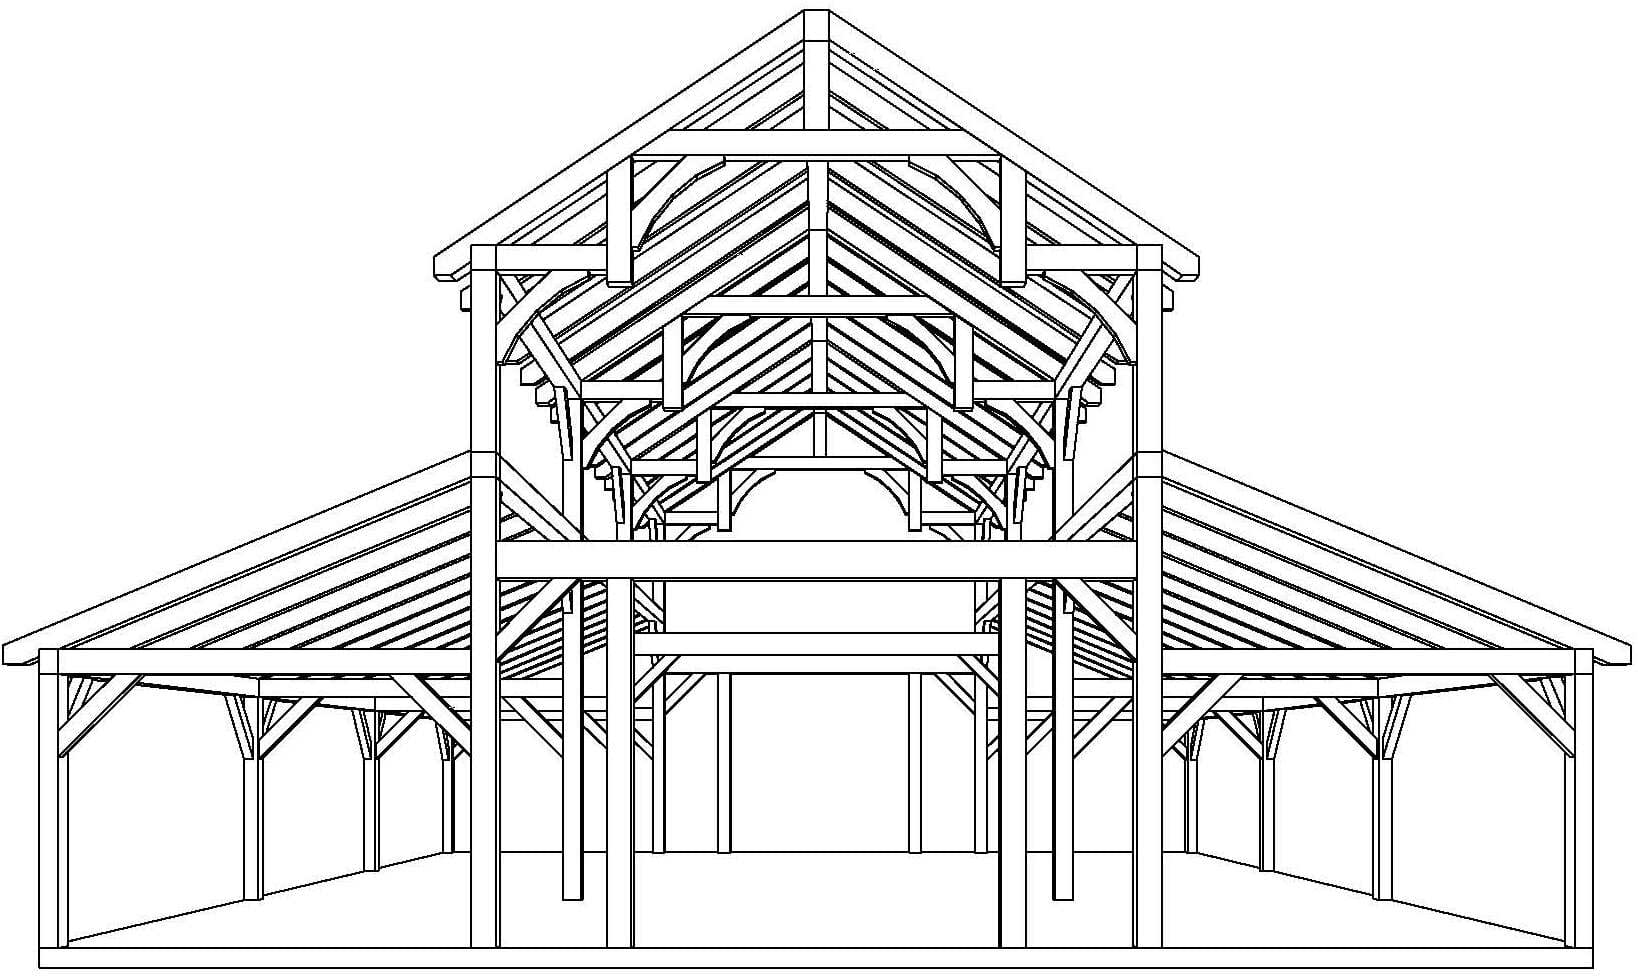 Equipment barn in tx with hemlock frame and curved braces Barn styles plans